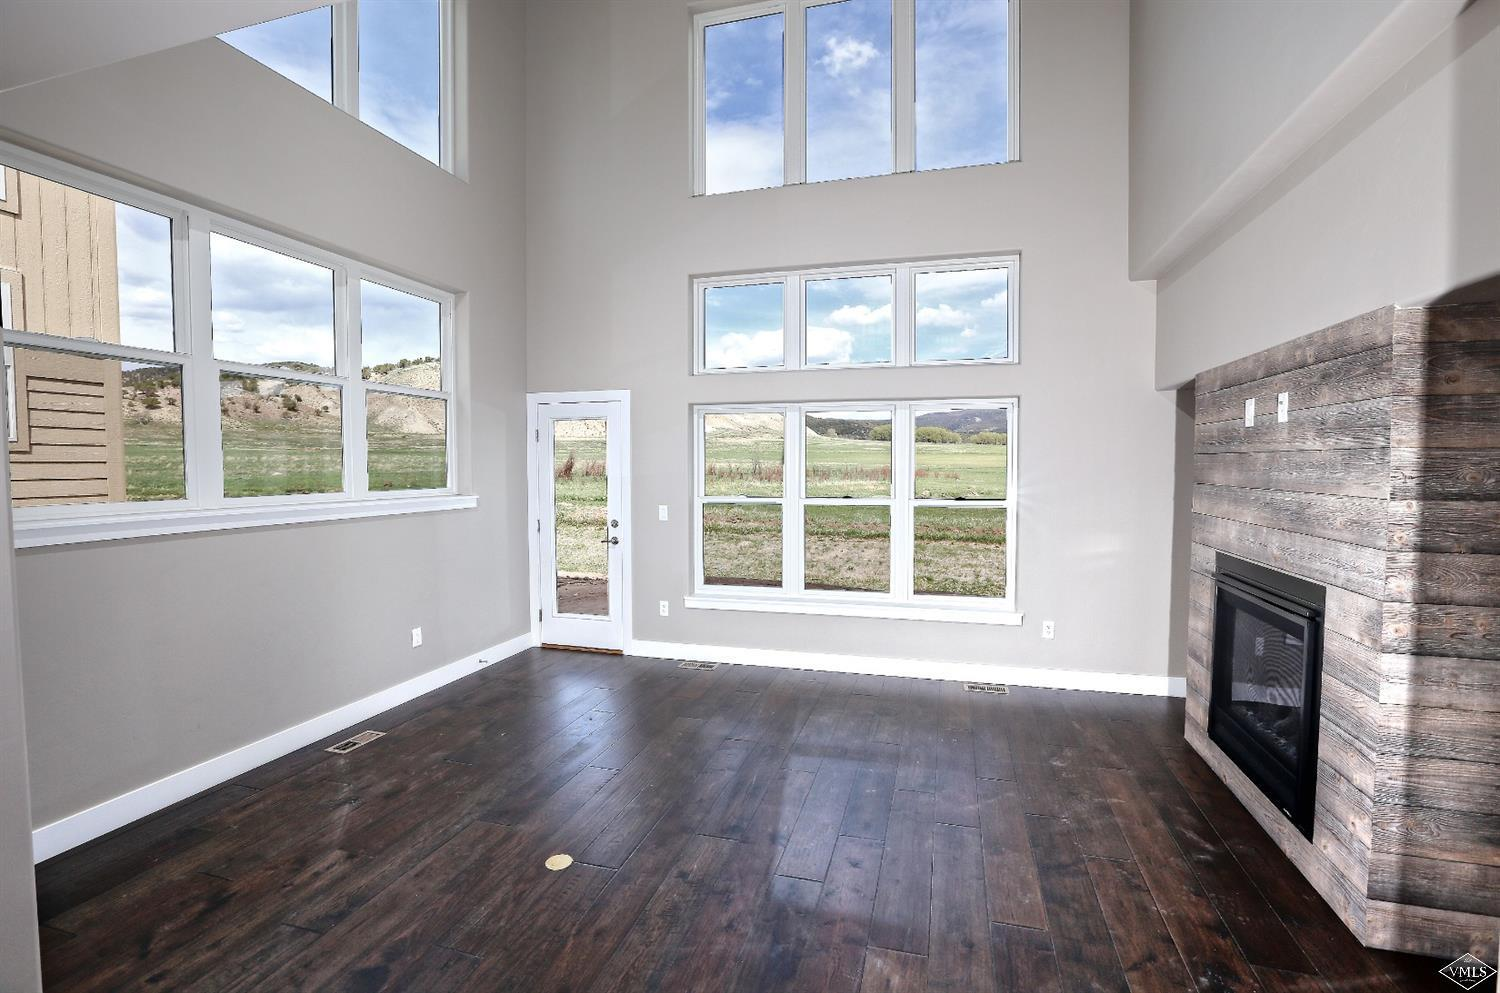 166 Soleil Circle, Eagle, Co 81631 Property Photo